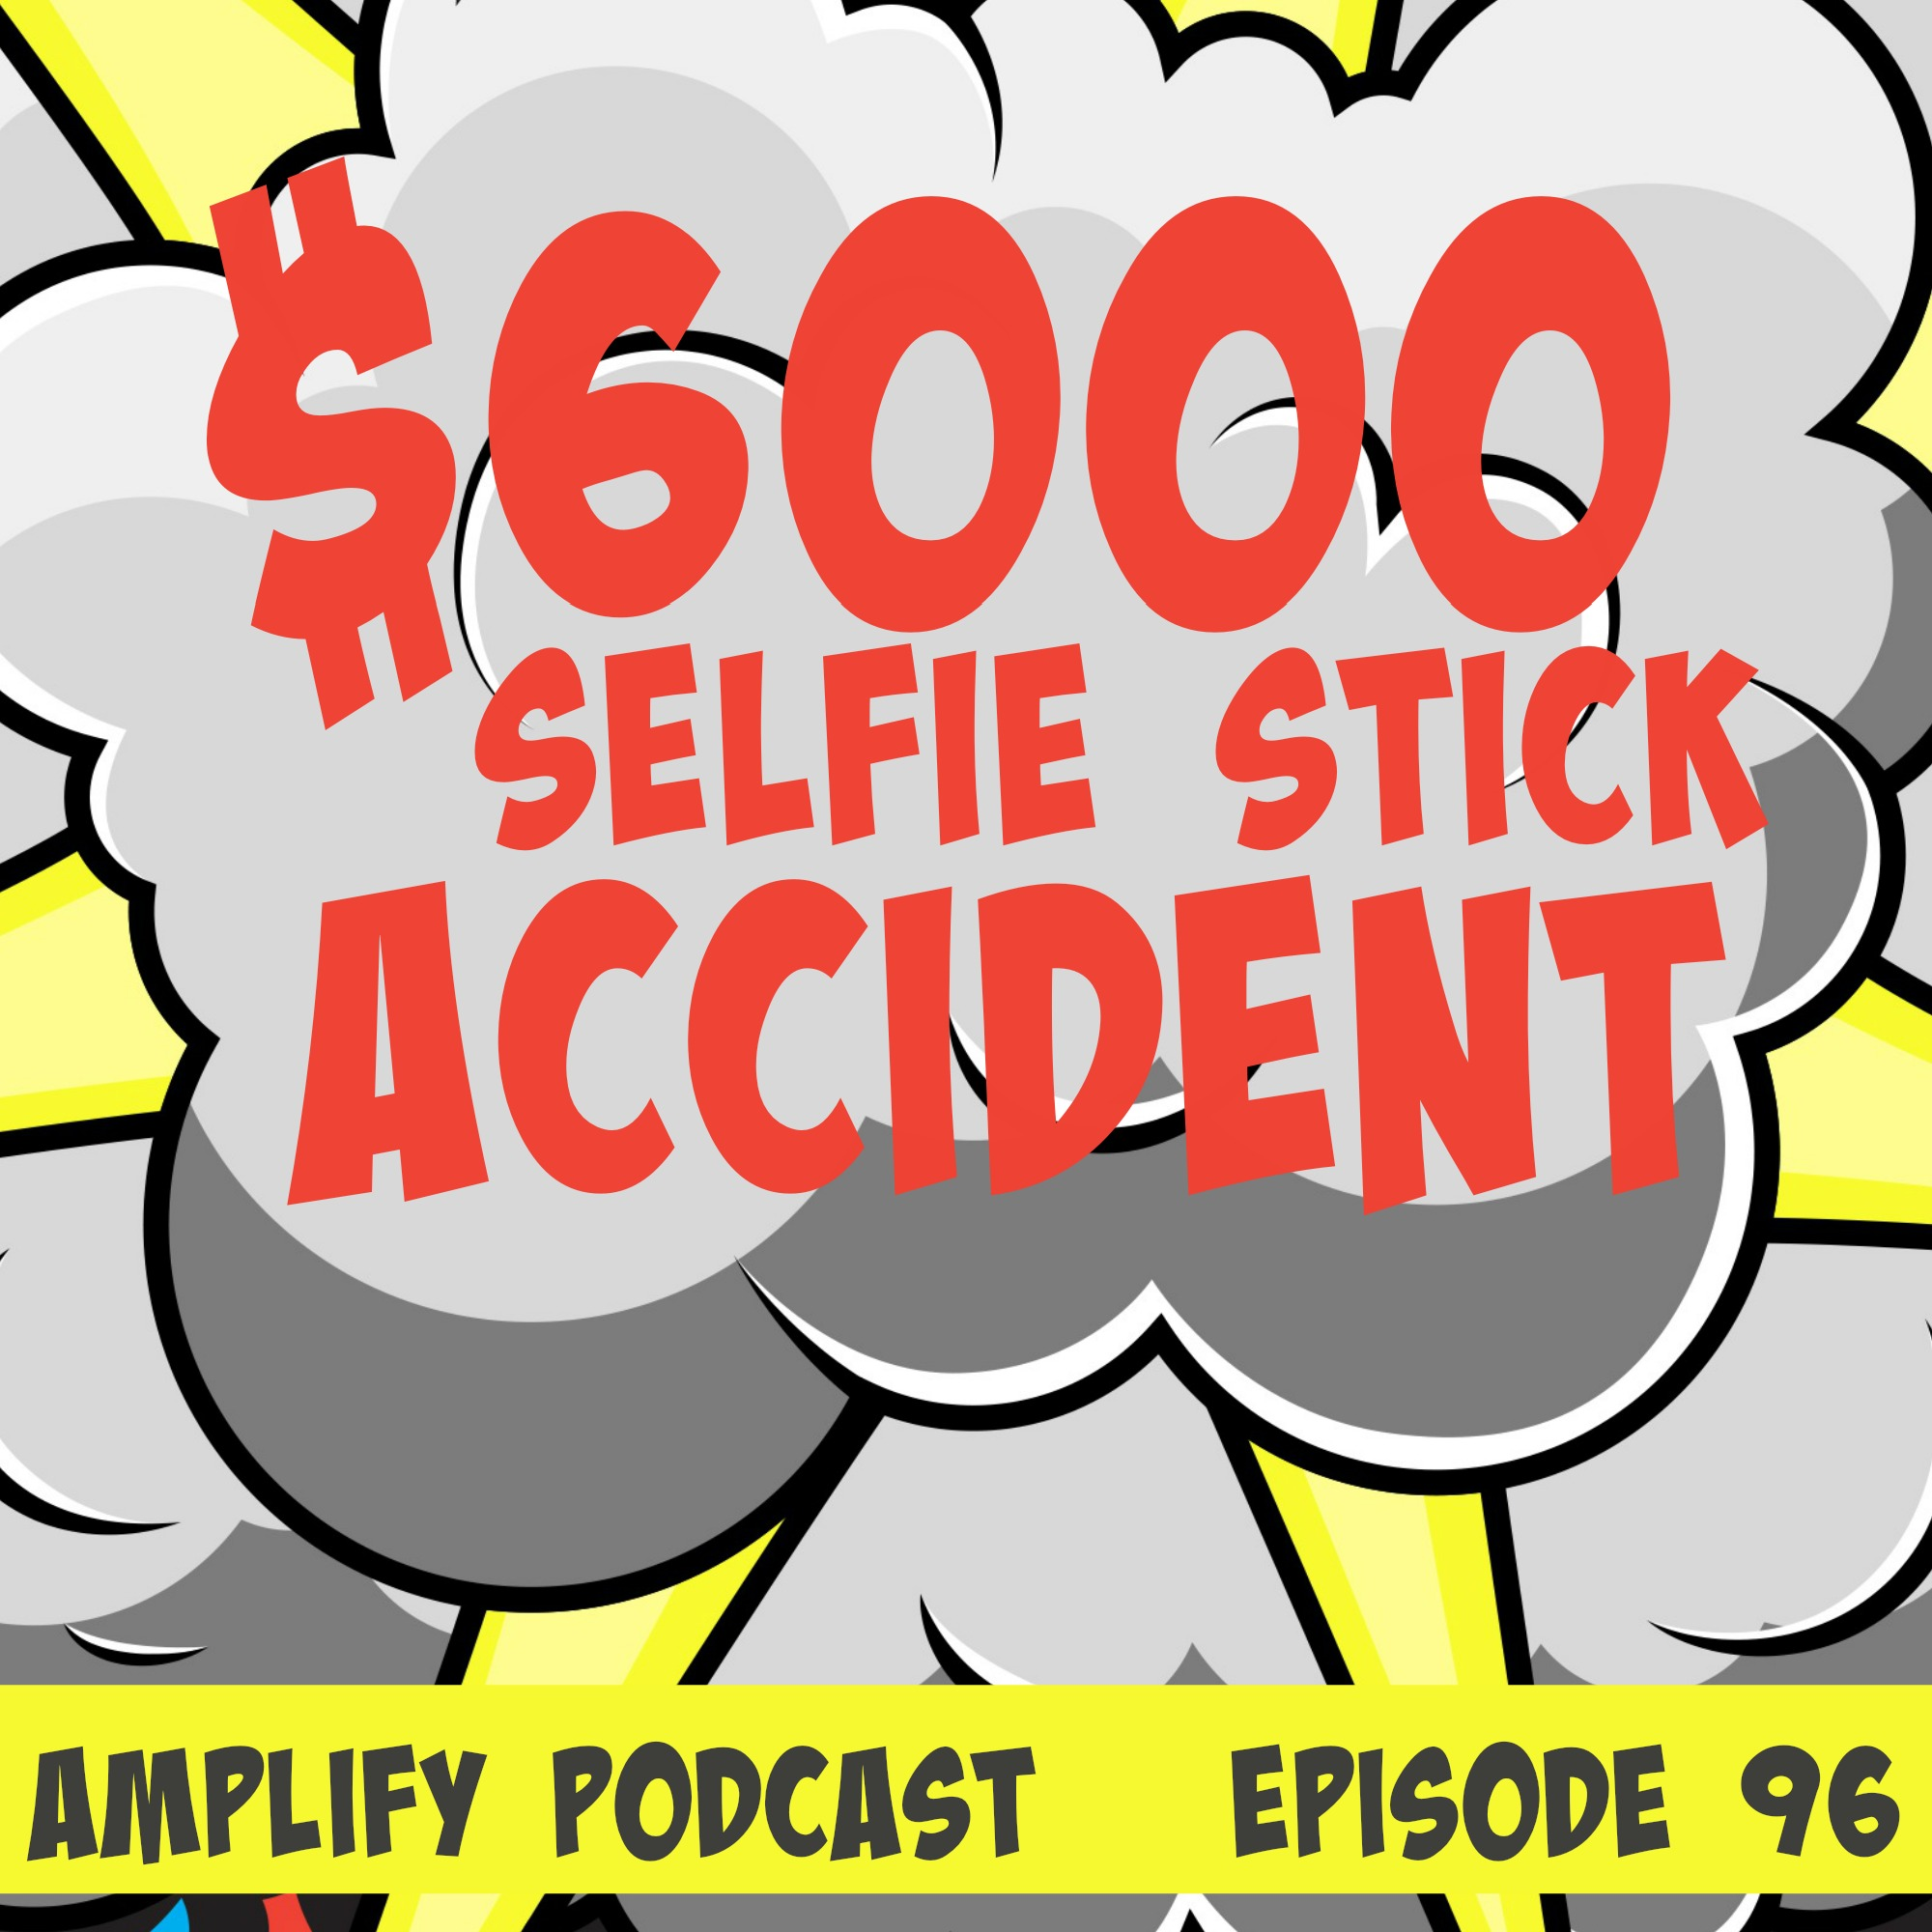 $6,000 Selfie Stick Accident